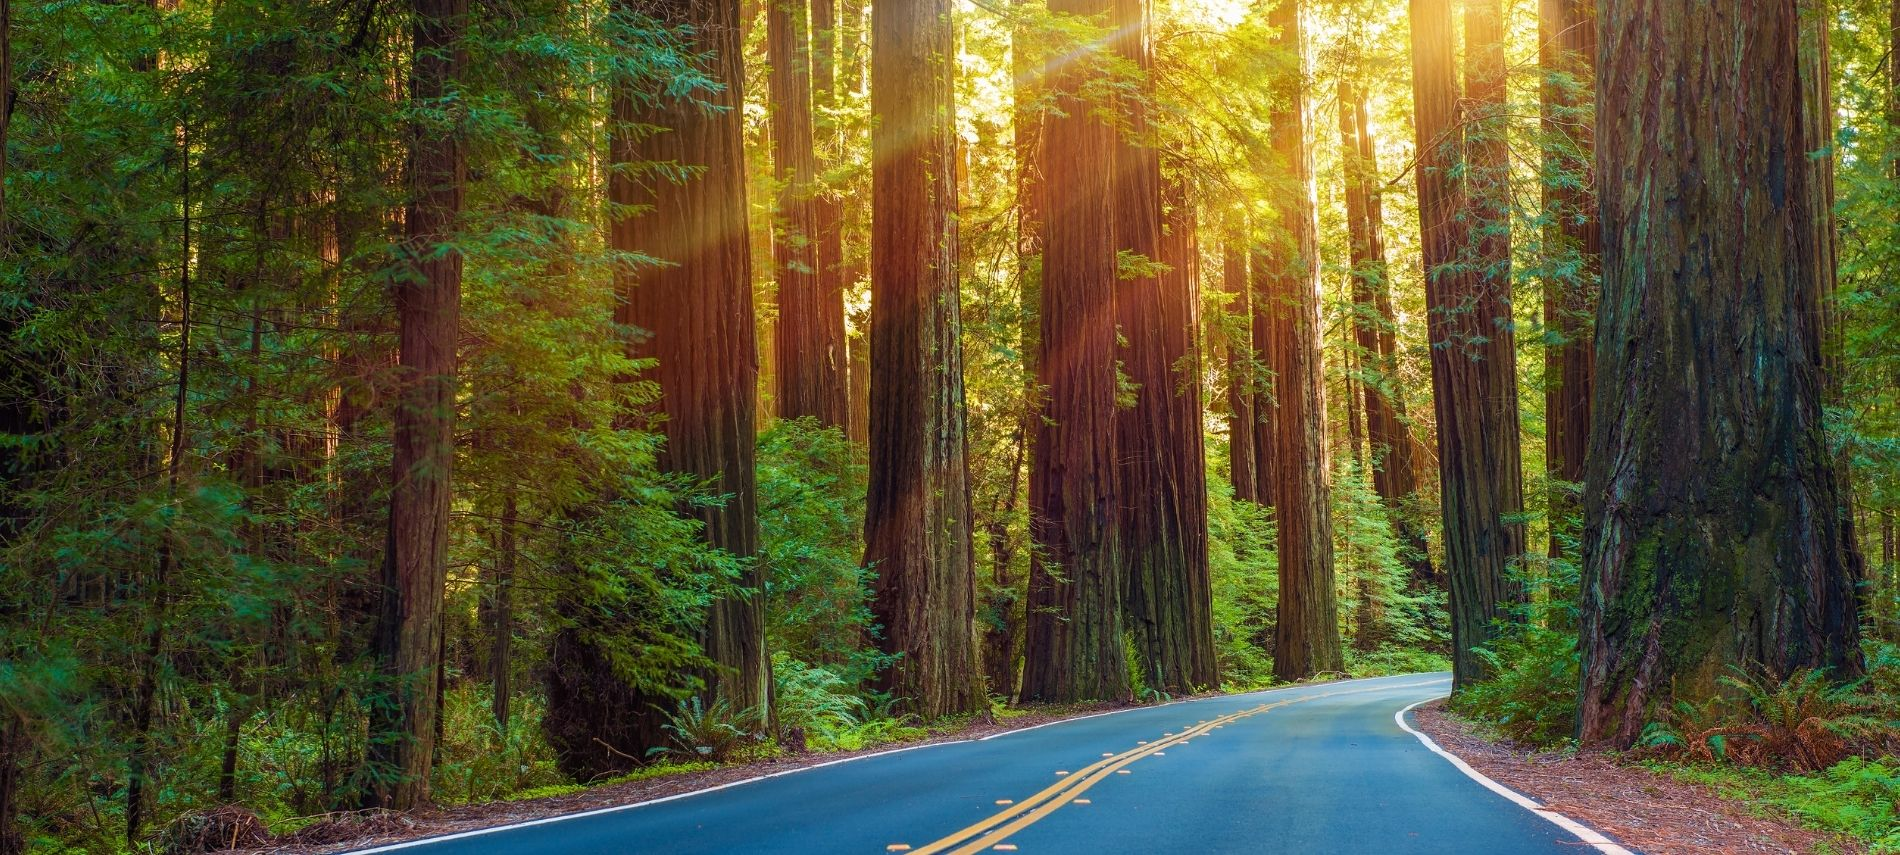 Winding road surrounded by acres of giant redwood trees with sunlight streaming in